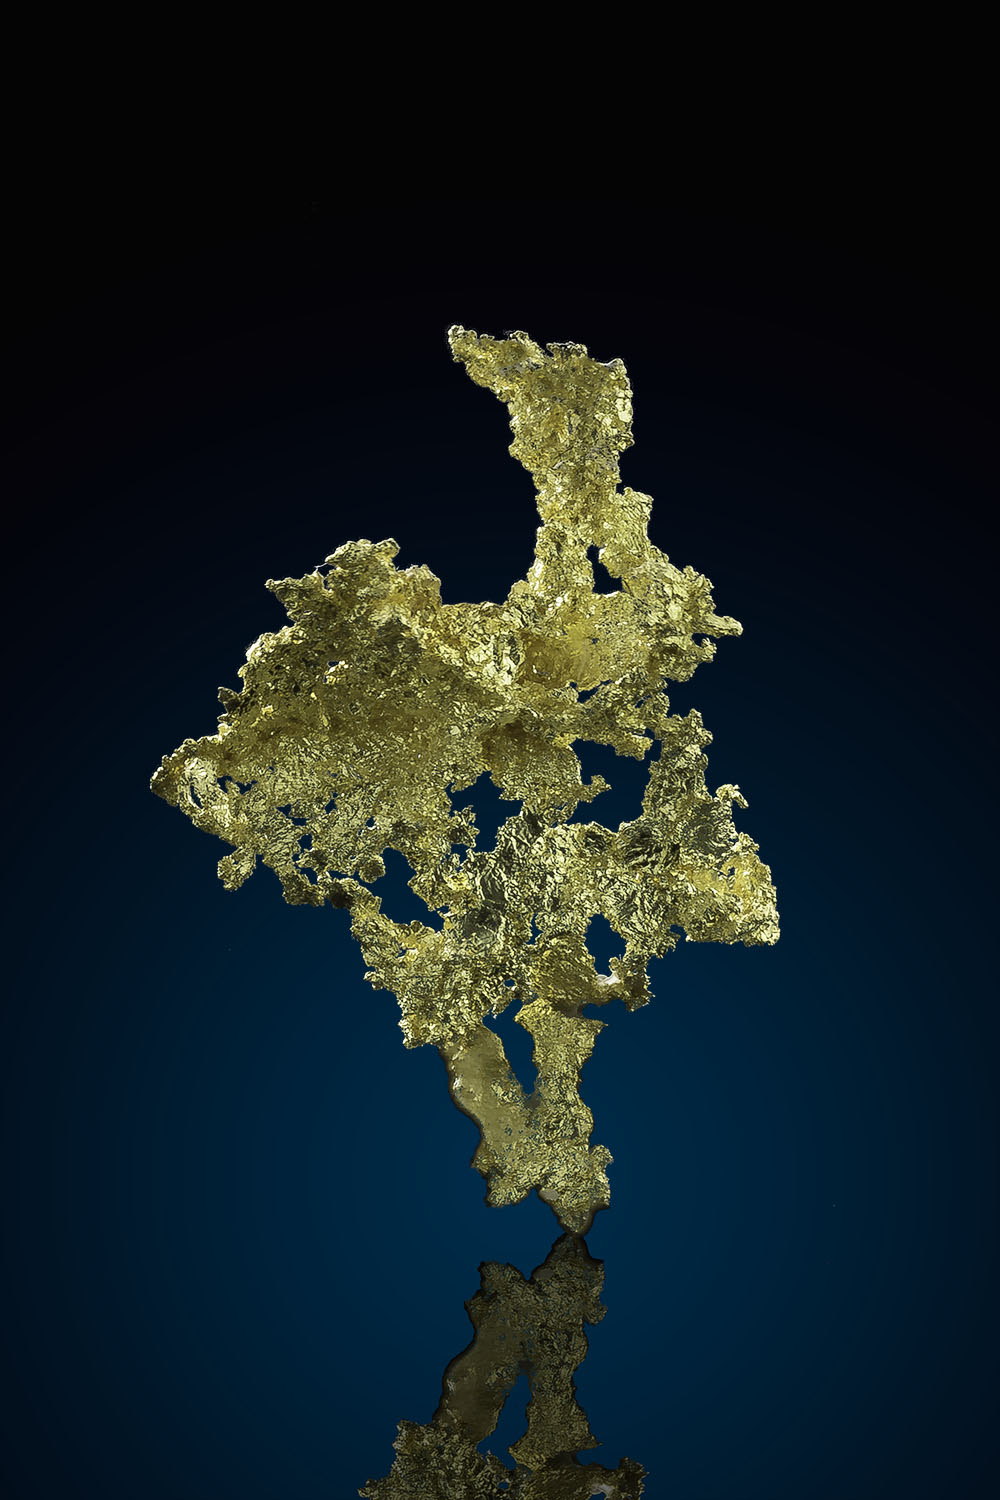 Lacy Crystalline Gold - Allegheny Mining District, California